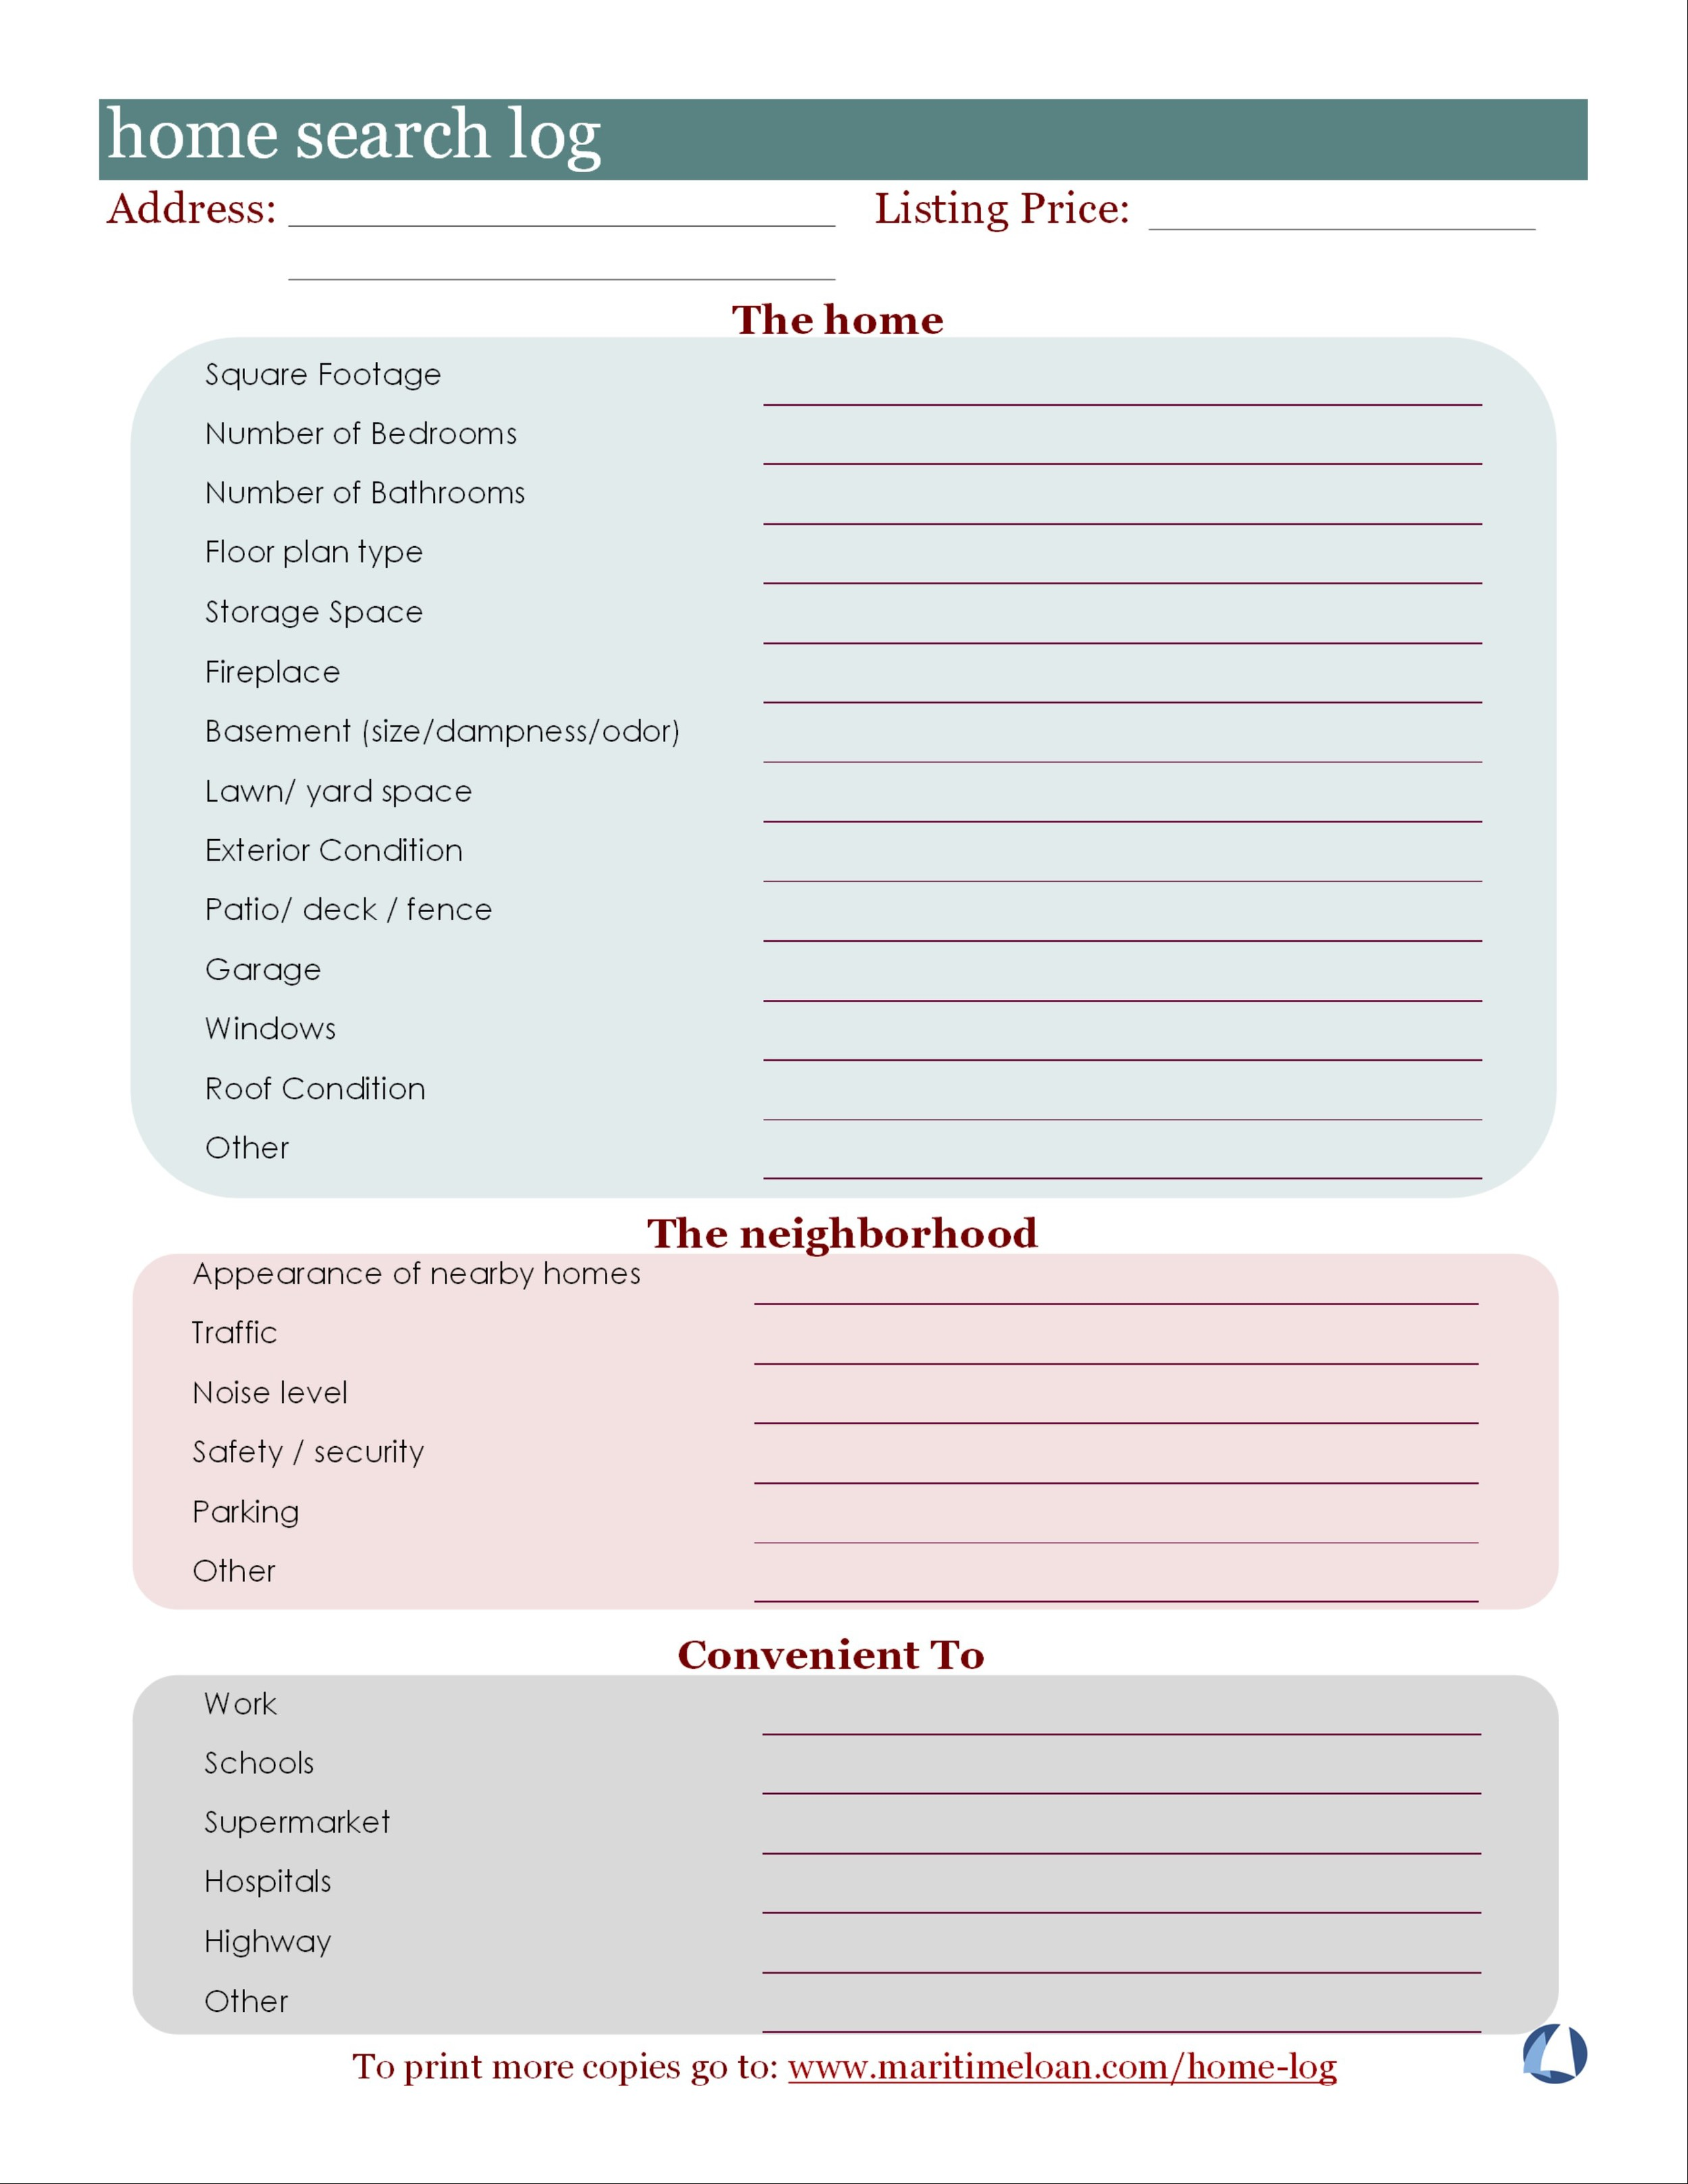 Click on the log or the download button to download this log. Use the log to help you stay organized while searching for homes.